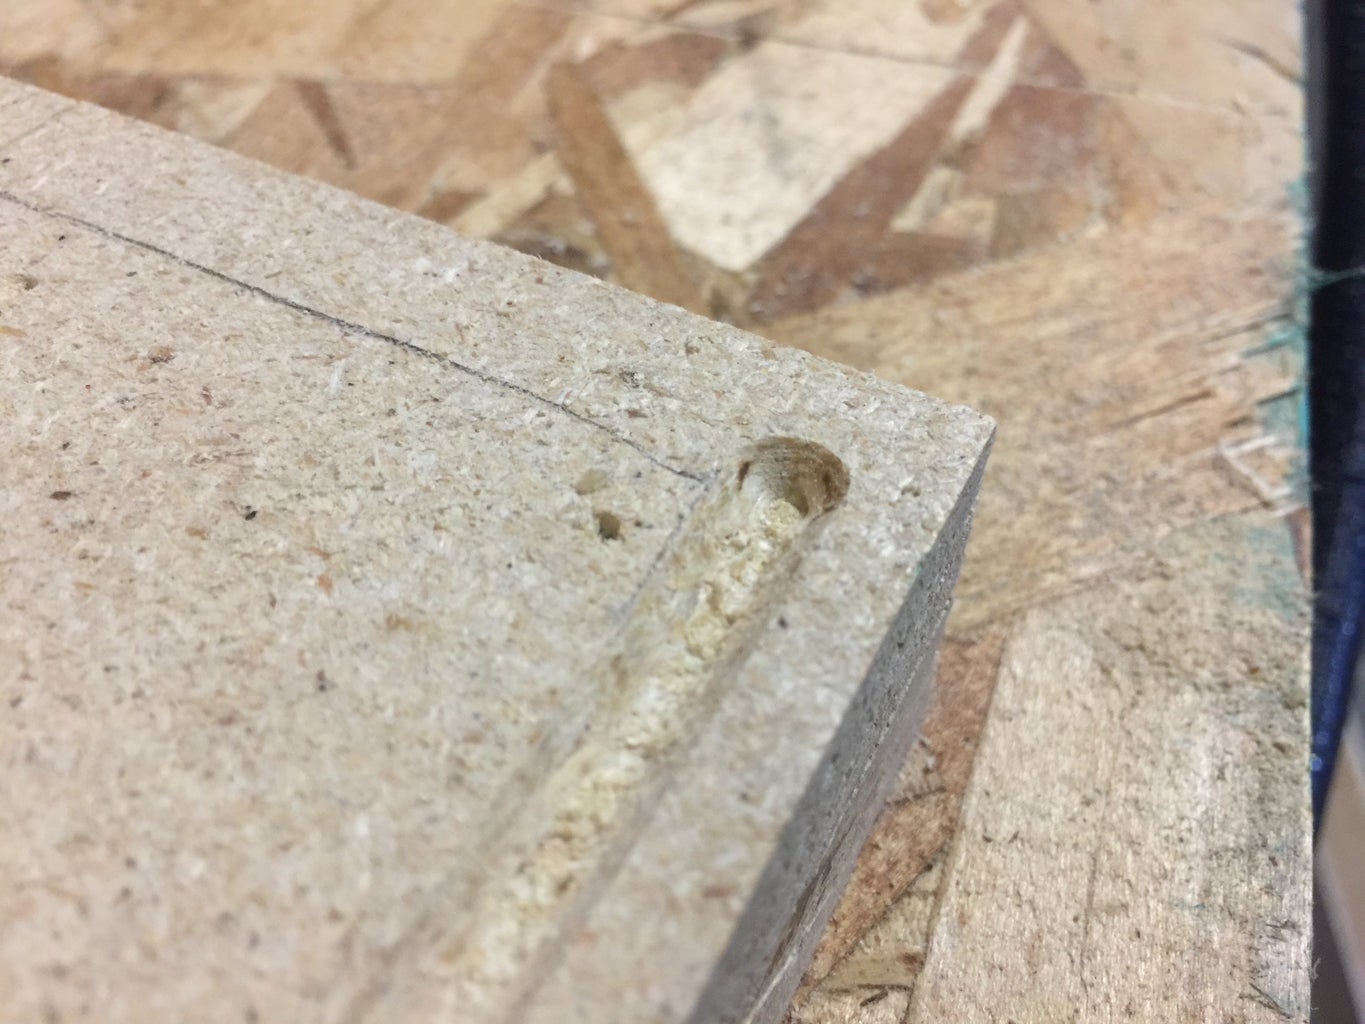 Rout an Underbench Groove